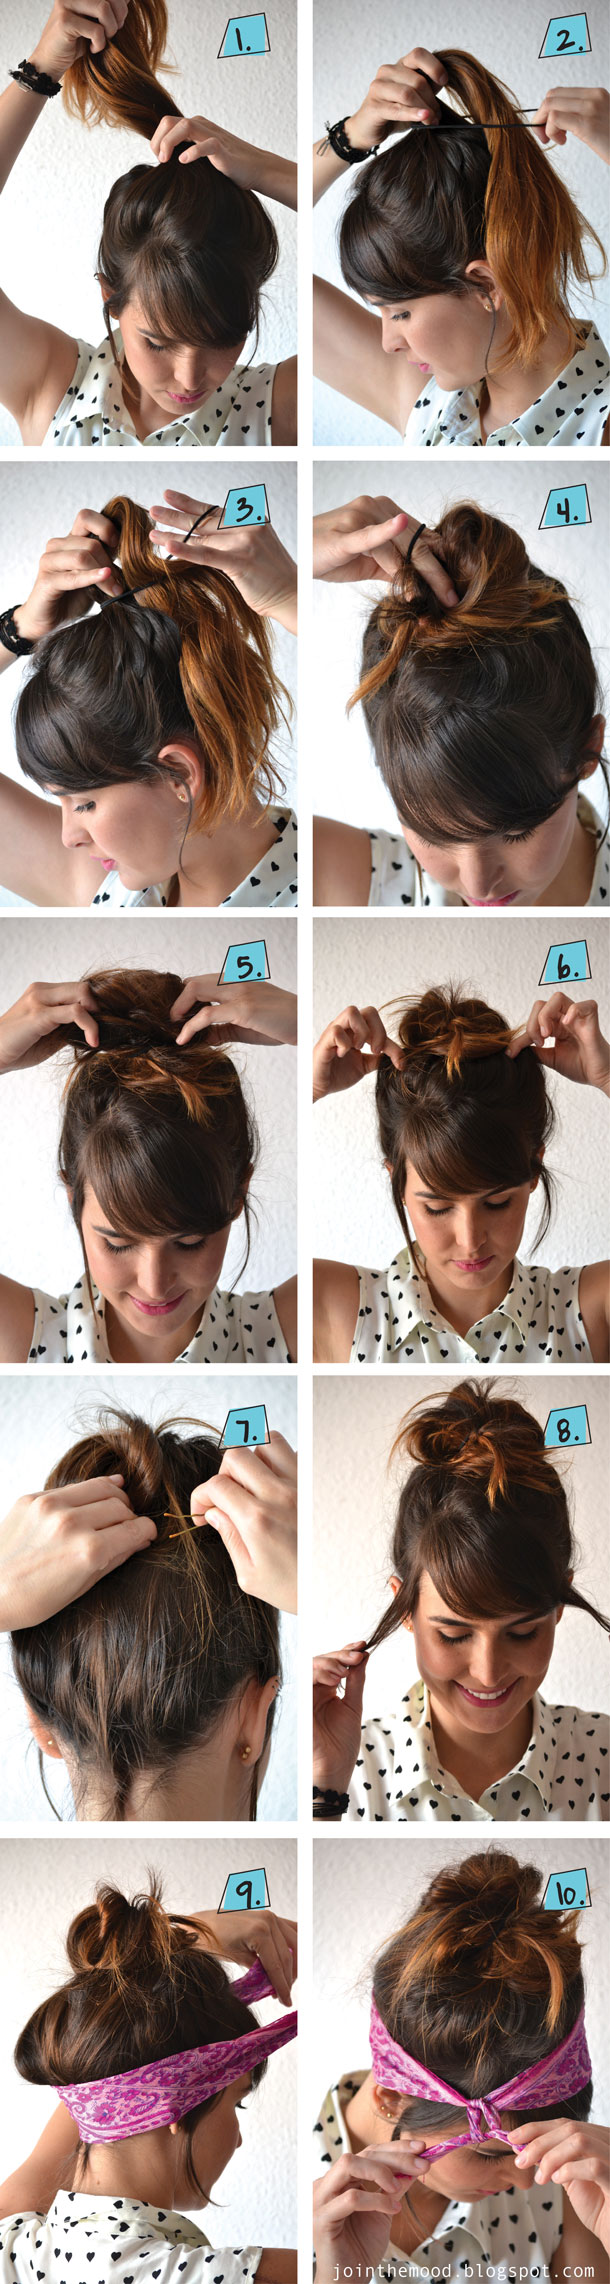 10 Fabulous DIY Hairstyles With Hair Accessories - Pretty